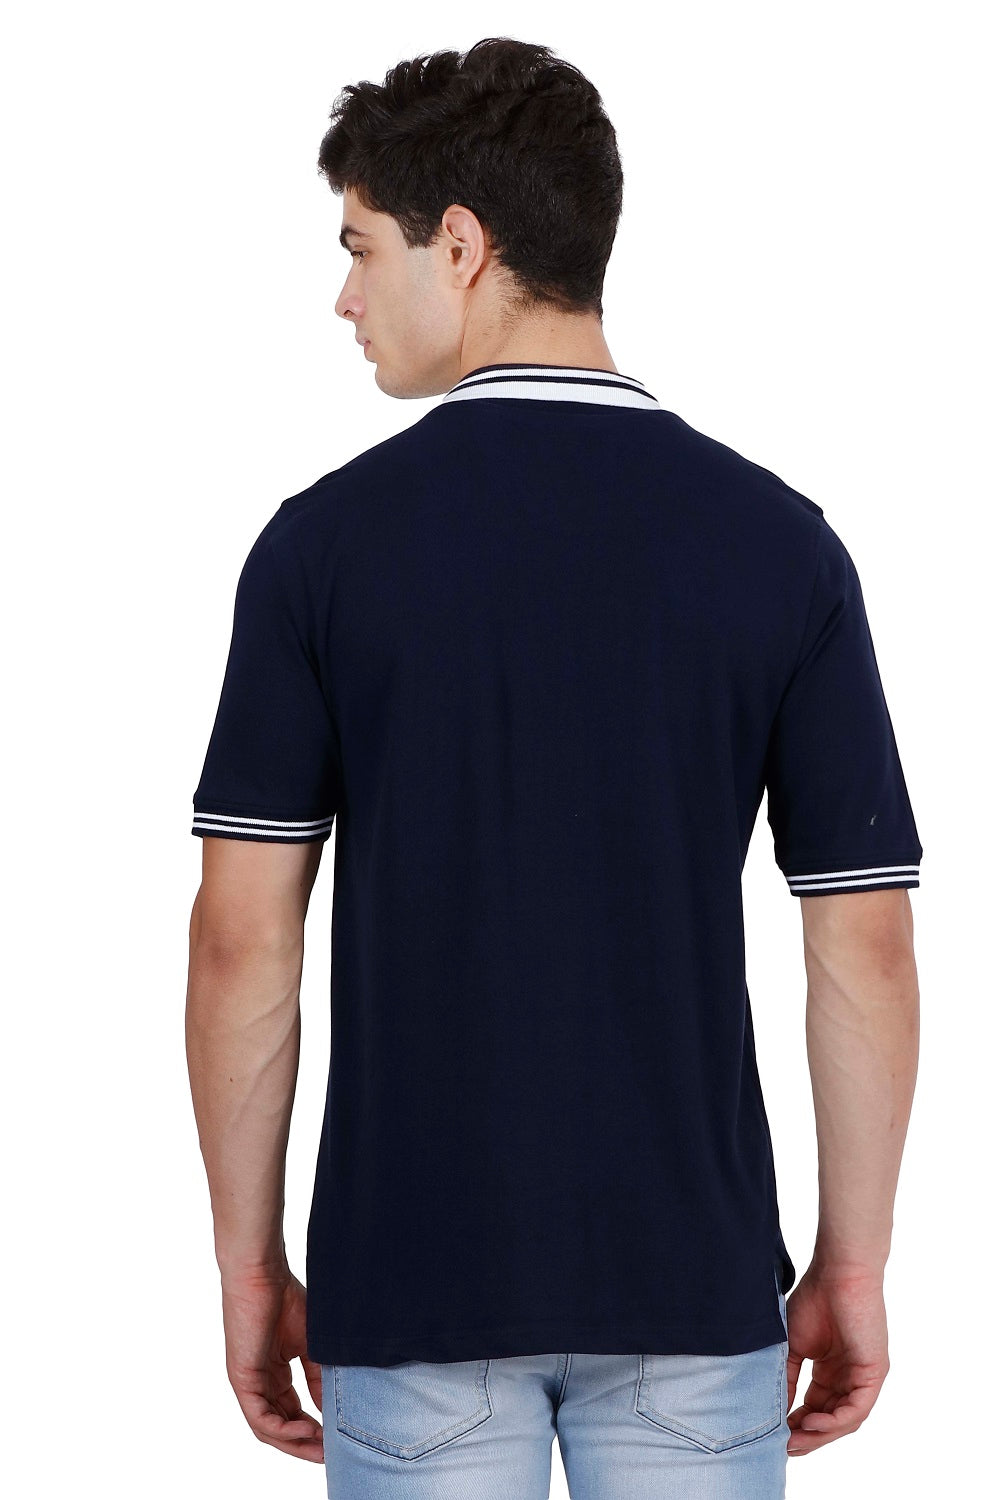 Hunt and Howe Men's Navy Blue Polo T-Shirt